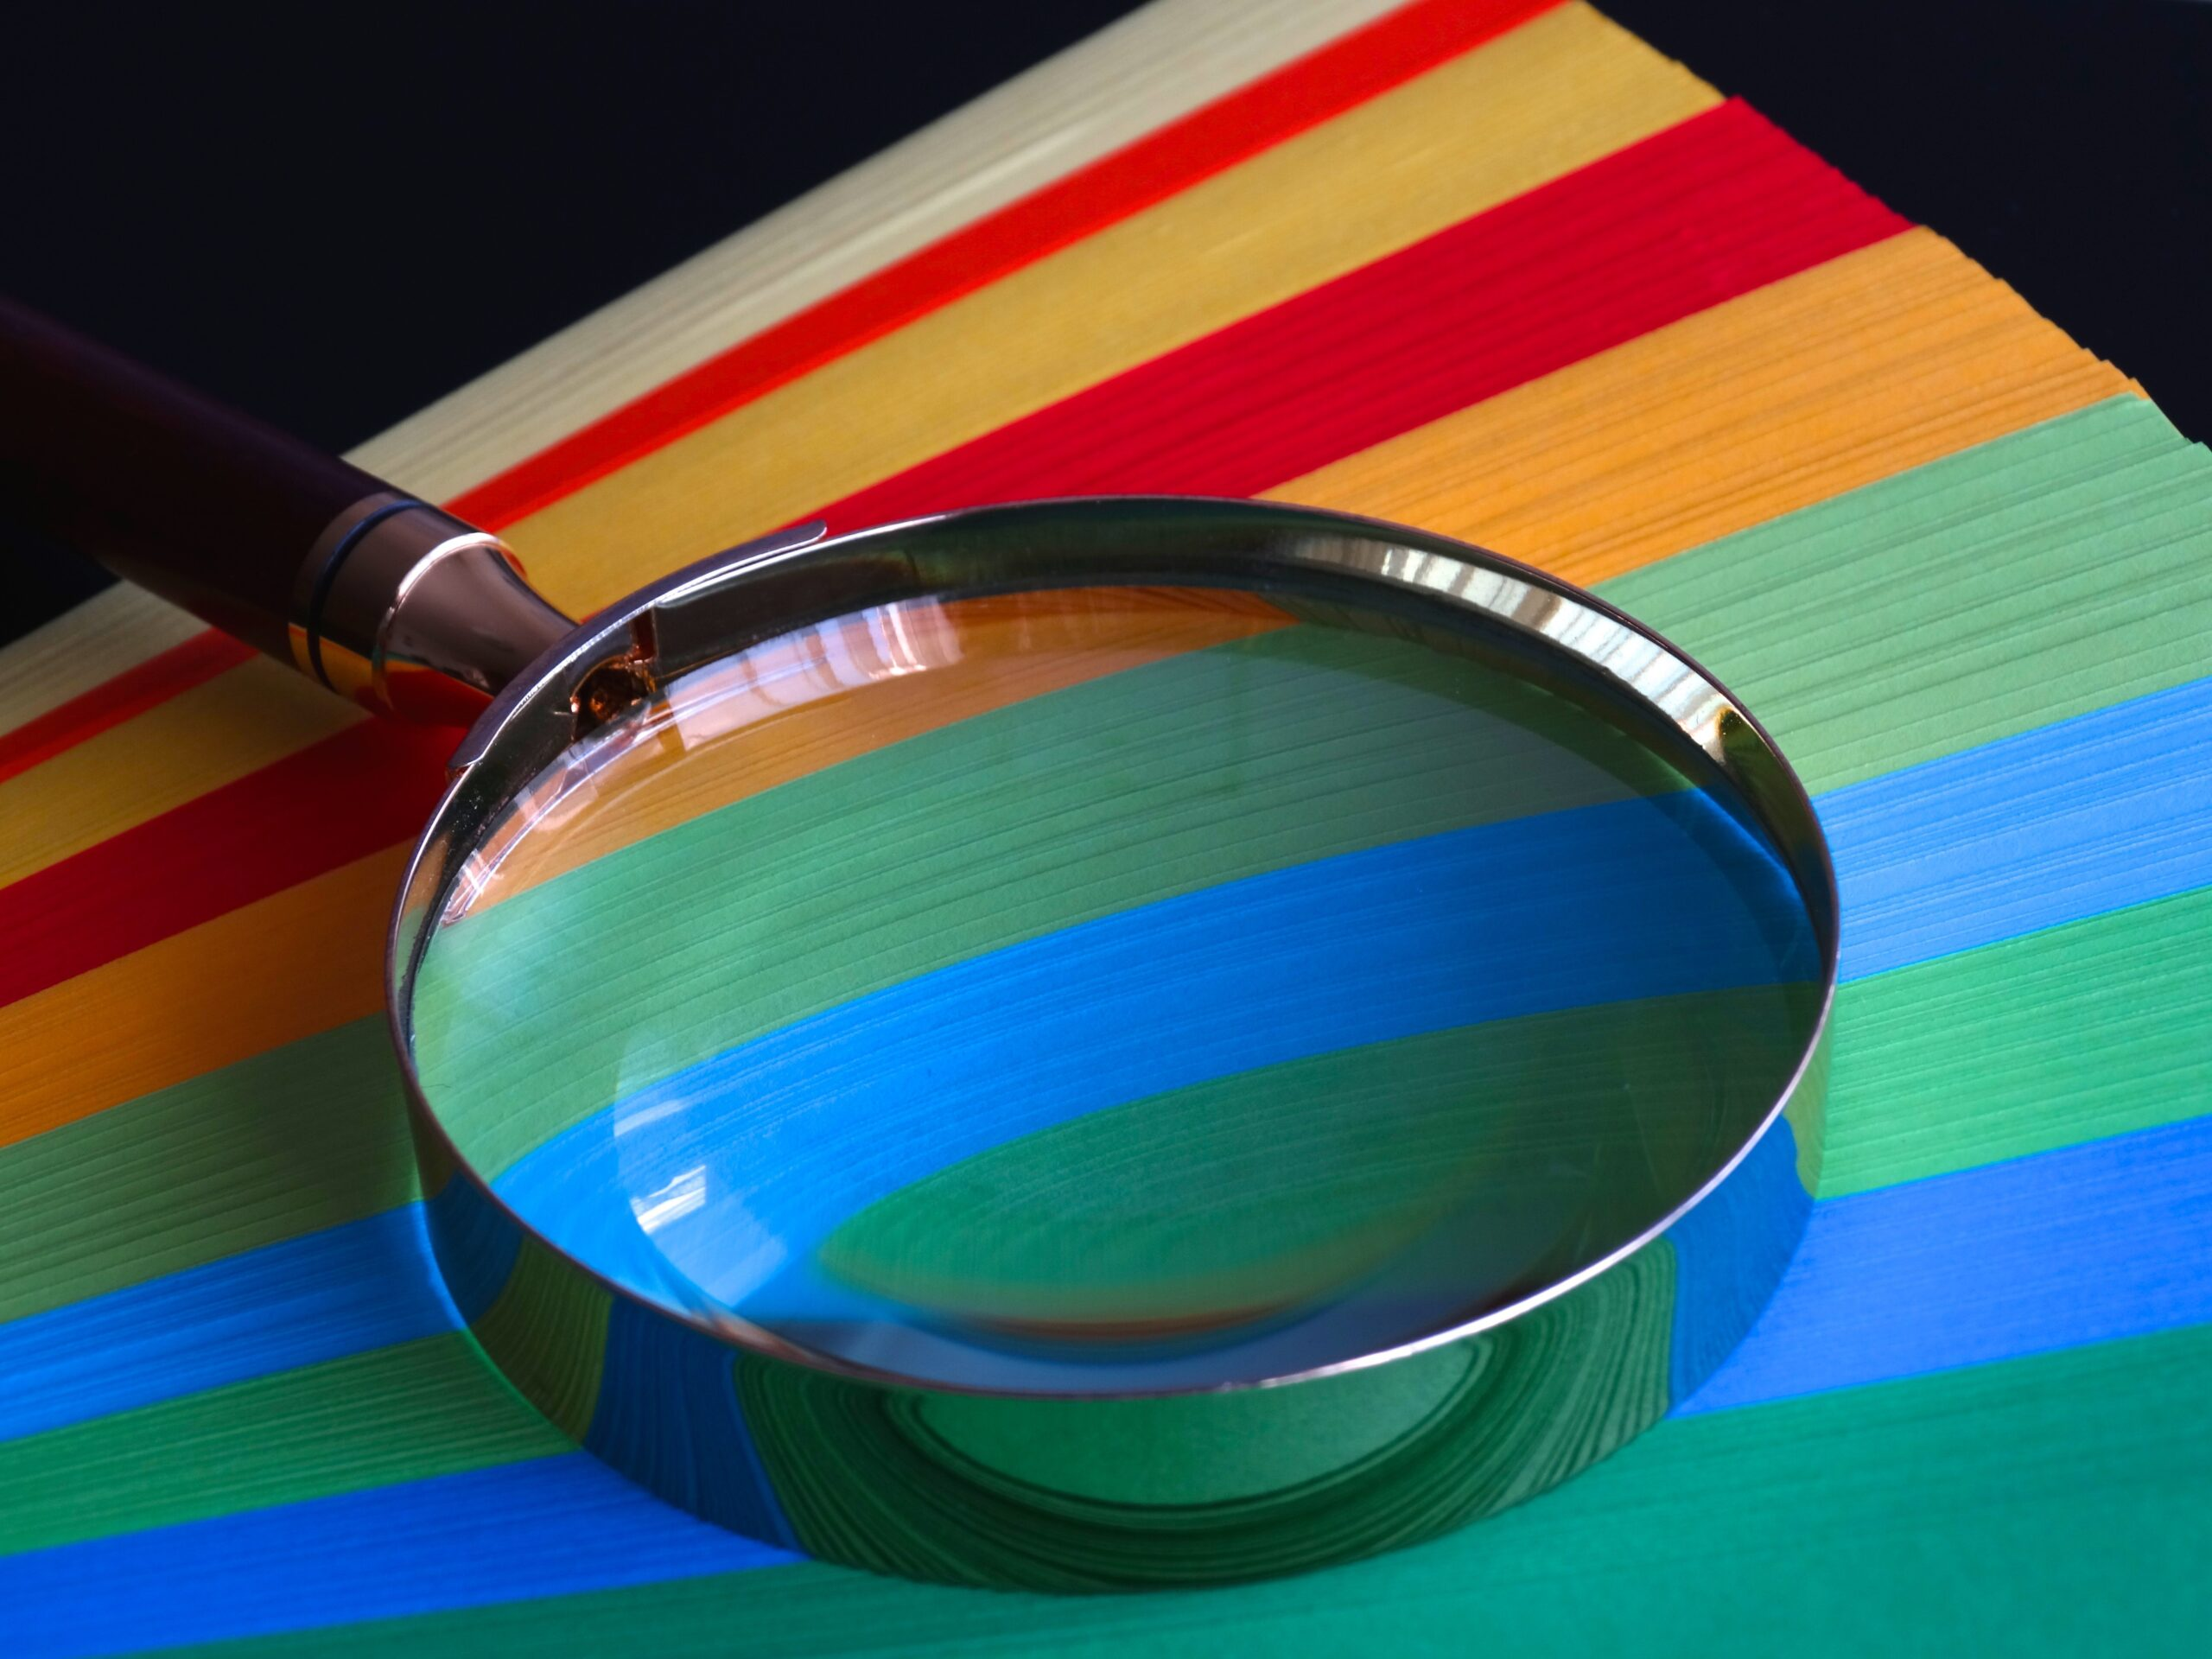 Magnifying glass over coloured paper - Rachel Writes proofreading service